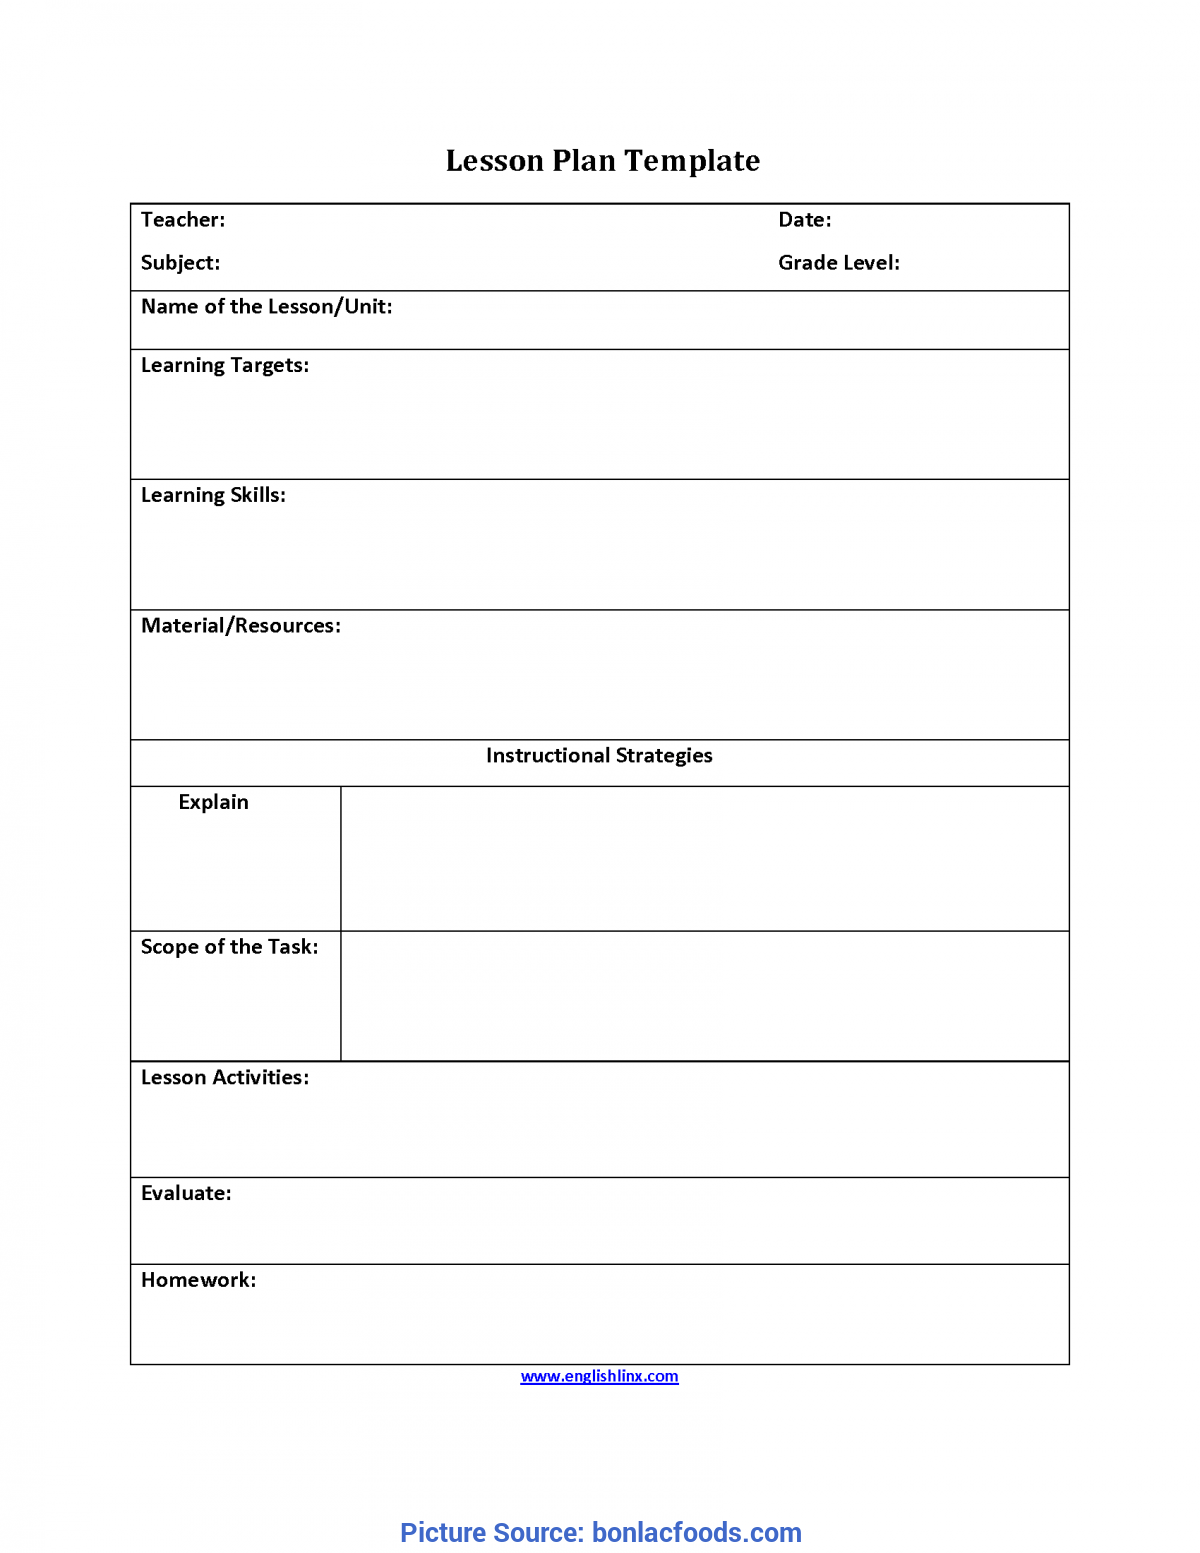 Typical Common Core Lesson Plan Template 8th Grade Ela